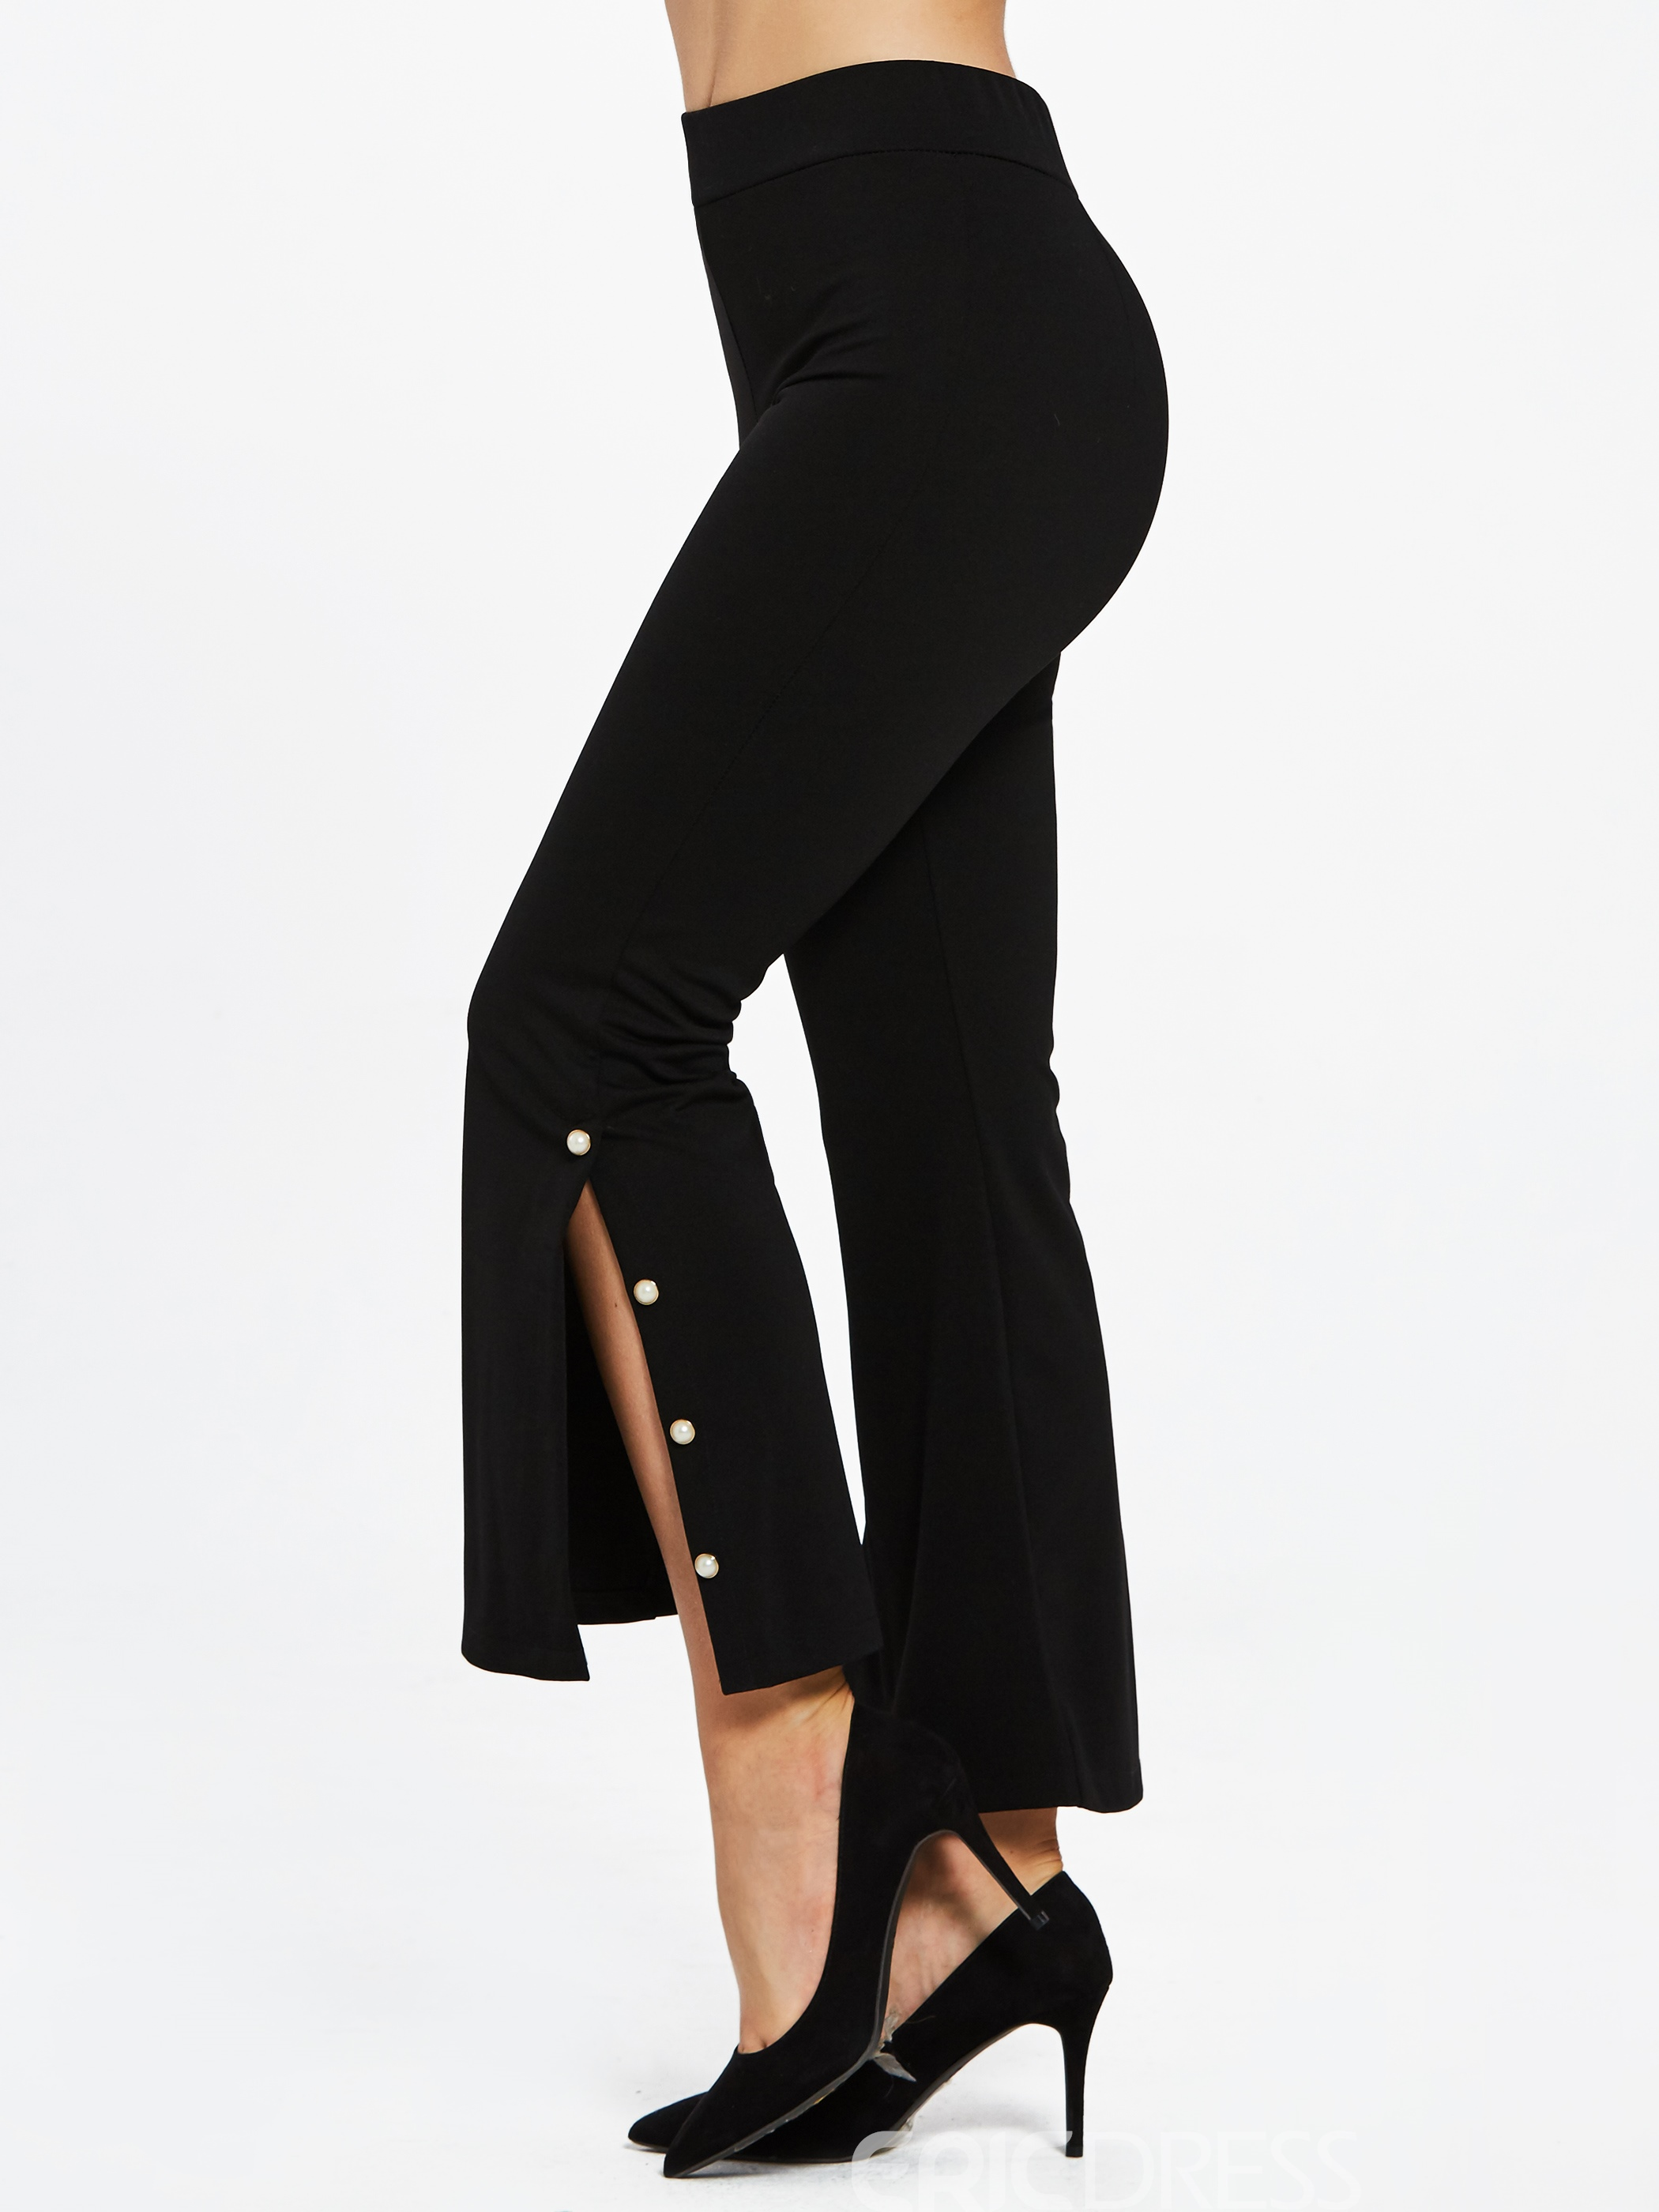 Slim Full Length Plain Women's Bellbottoms